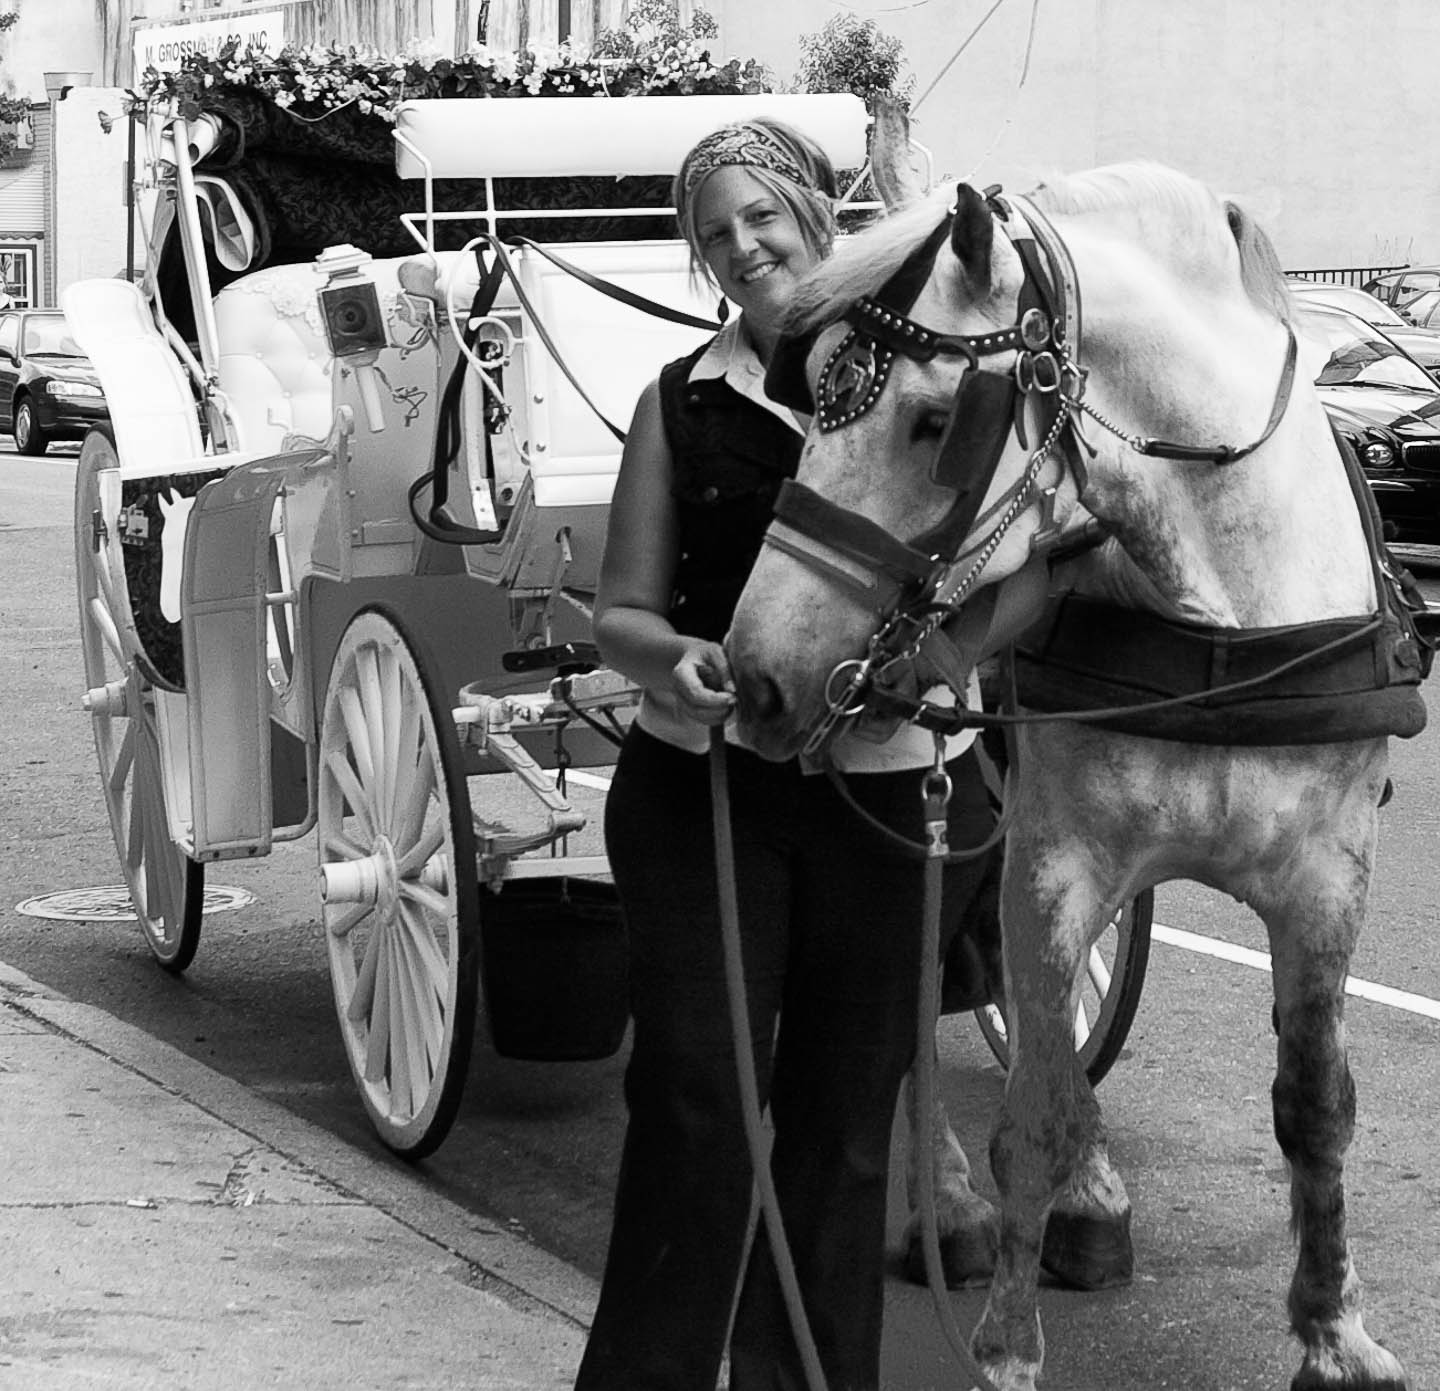 horse-carriage-street-philly-photos-2